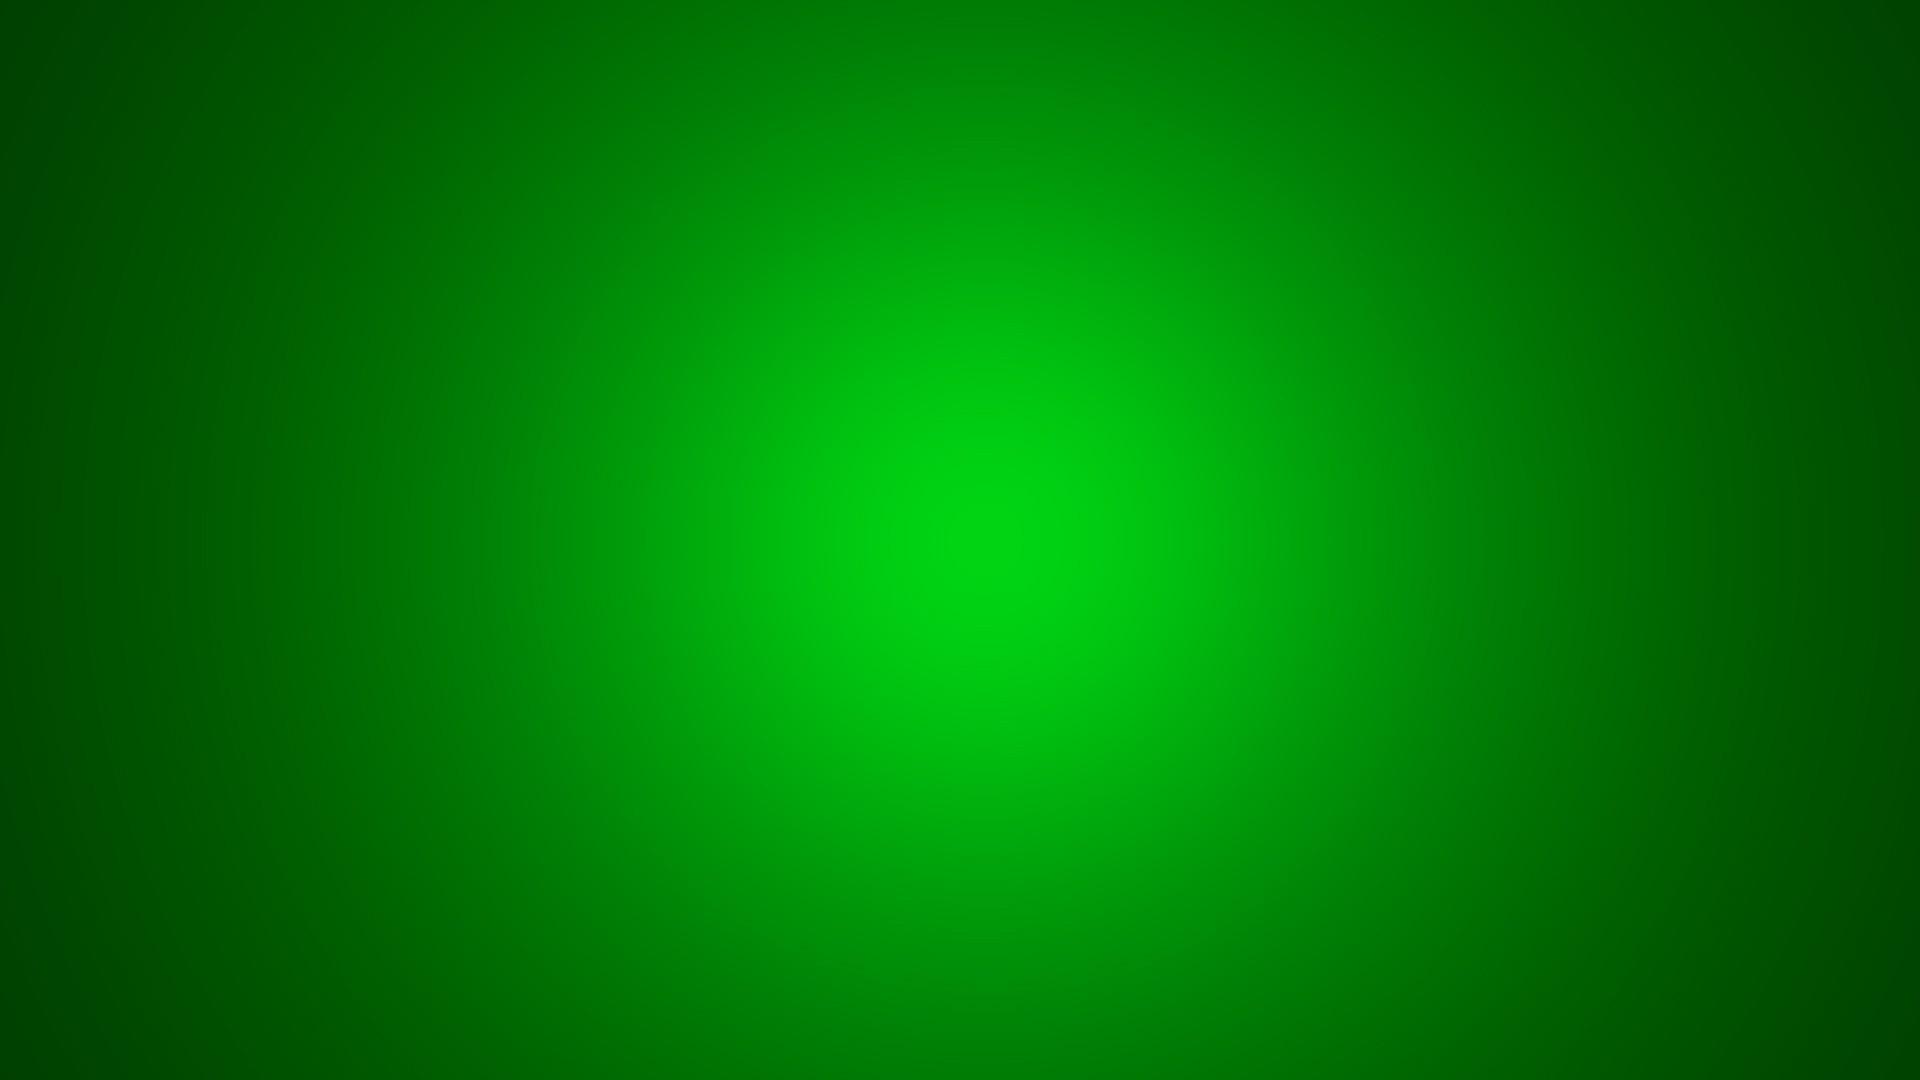 Green background hd clipart jpg royalty free 45 HD Green Wallpapers/Backgrounds For Free Download jpg royalty free